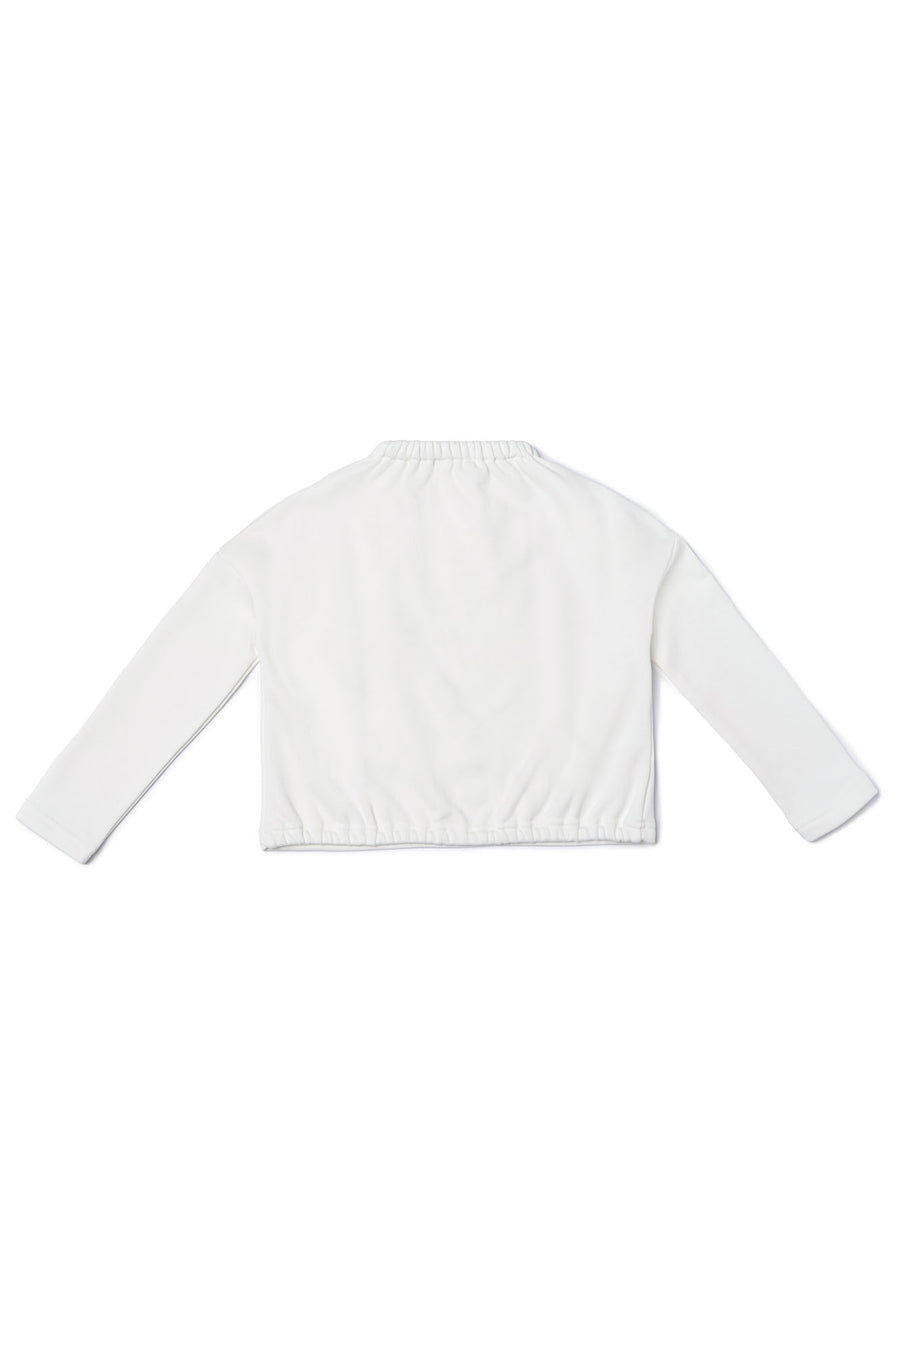 White Sweatshirt Top by Marni